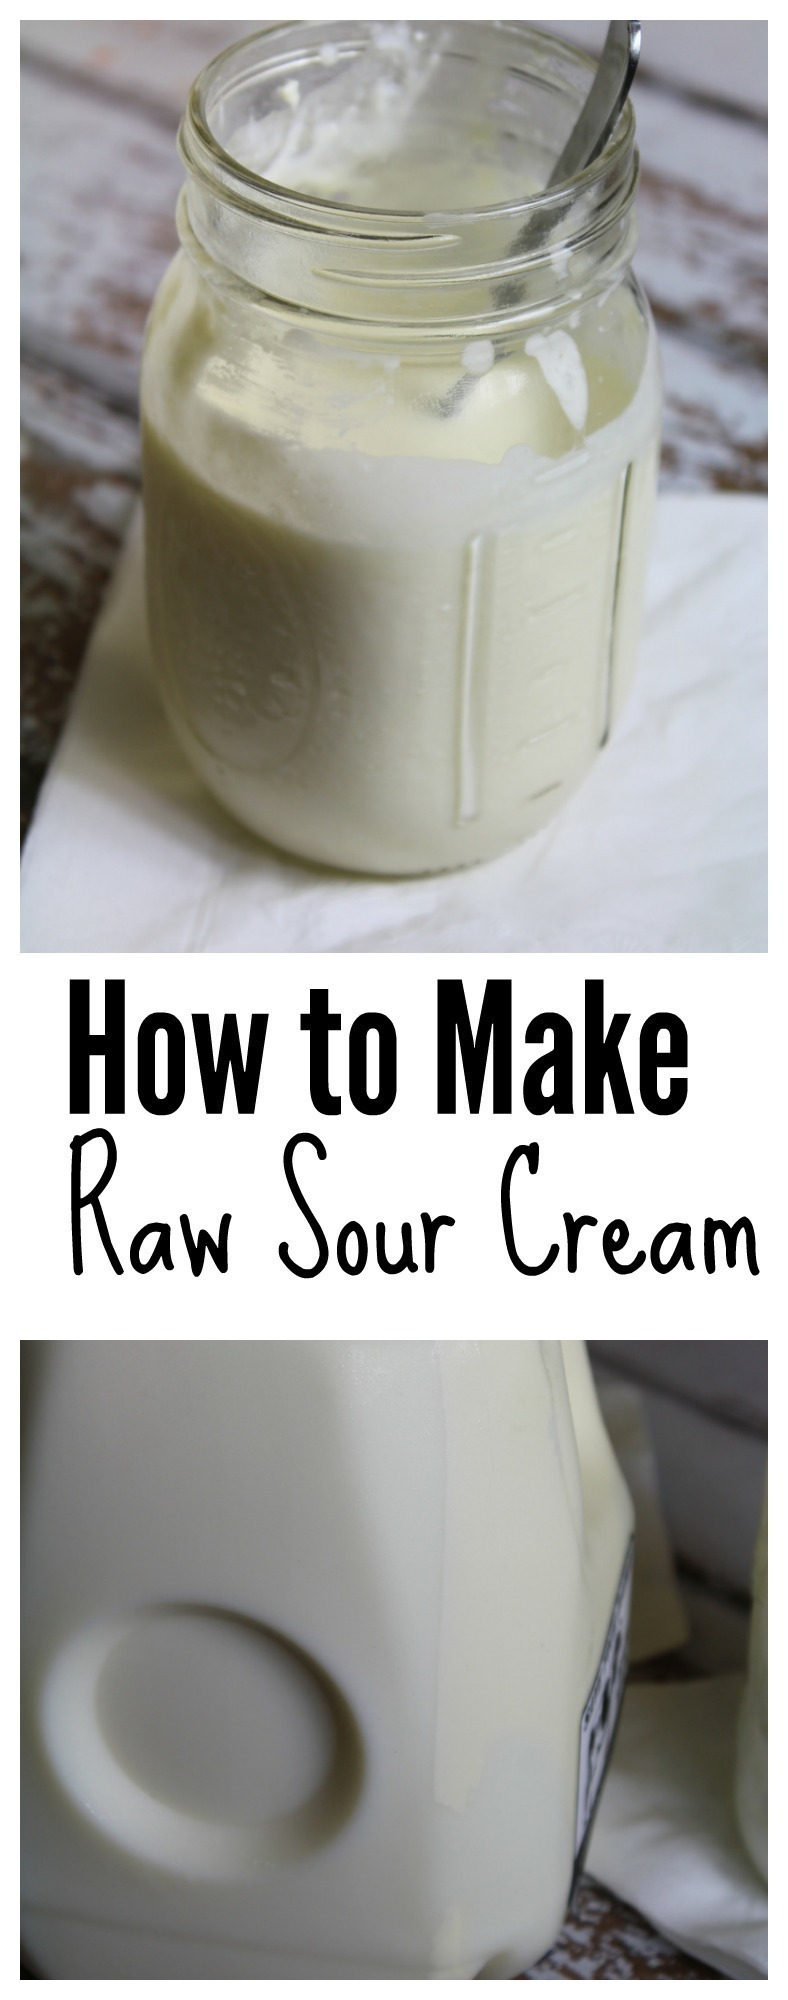 Making your own raw sour cream is incredibly easy - here are two methods!